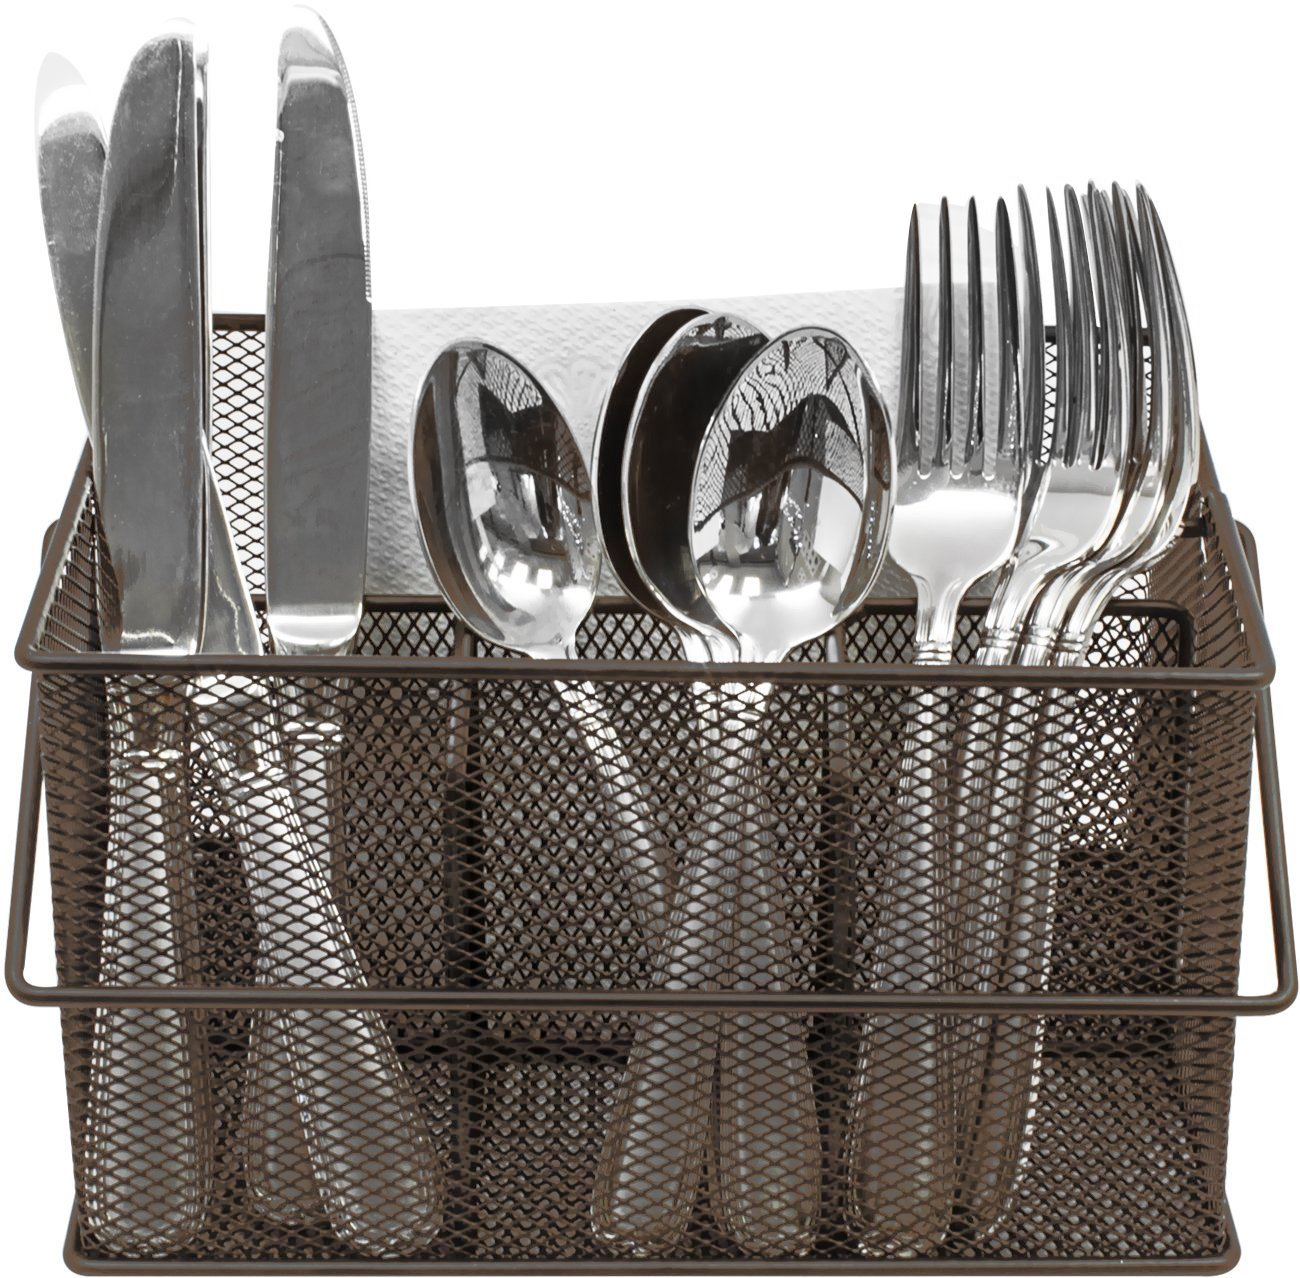 Sorbus Utensil Caddy — Silverware, Napkin Holder, and Condiment Organizer — Multi-Purpose Steel Mesh Caddy—Ideal for Kitchen, Dining, Entertaining, Tailgating, Picnics, and Much More (Black) UTN-CADY-BLK